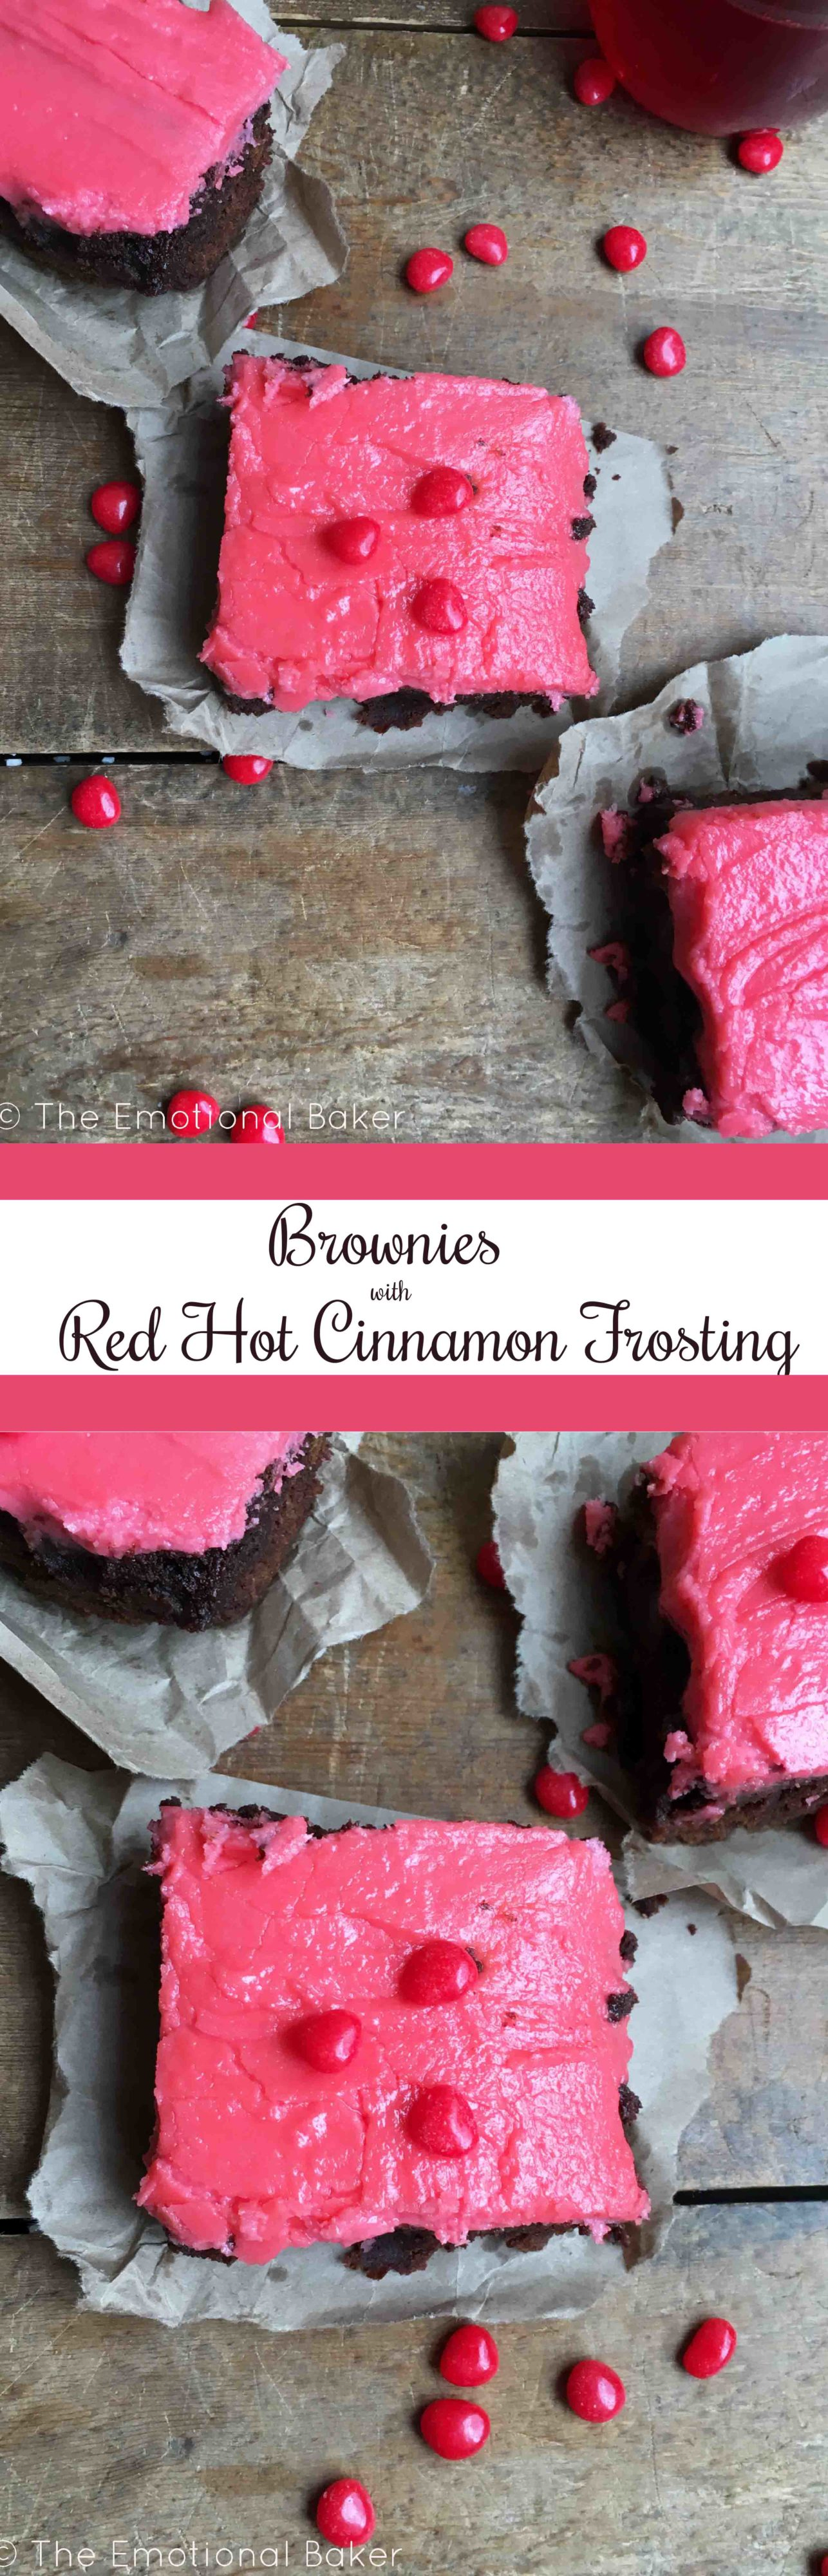 Brownies with Red Hot Cinnamon Frosting